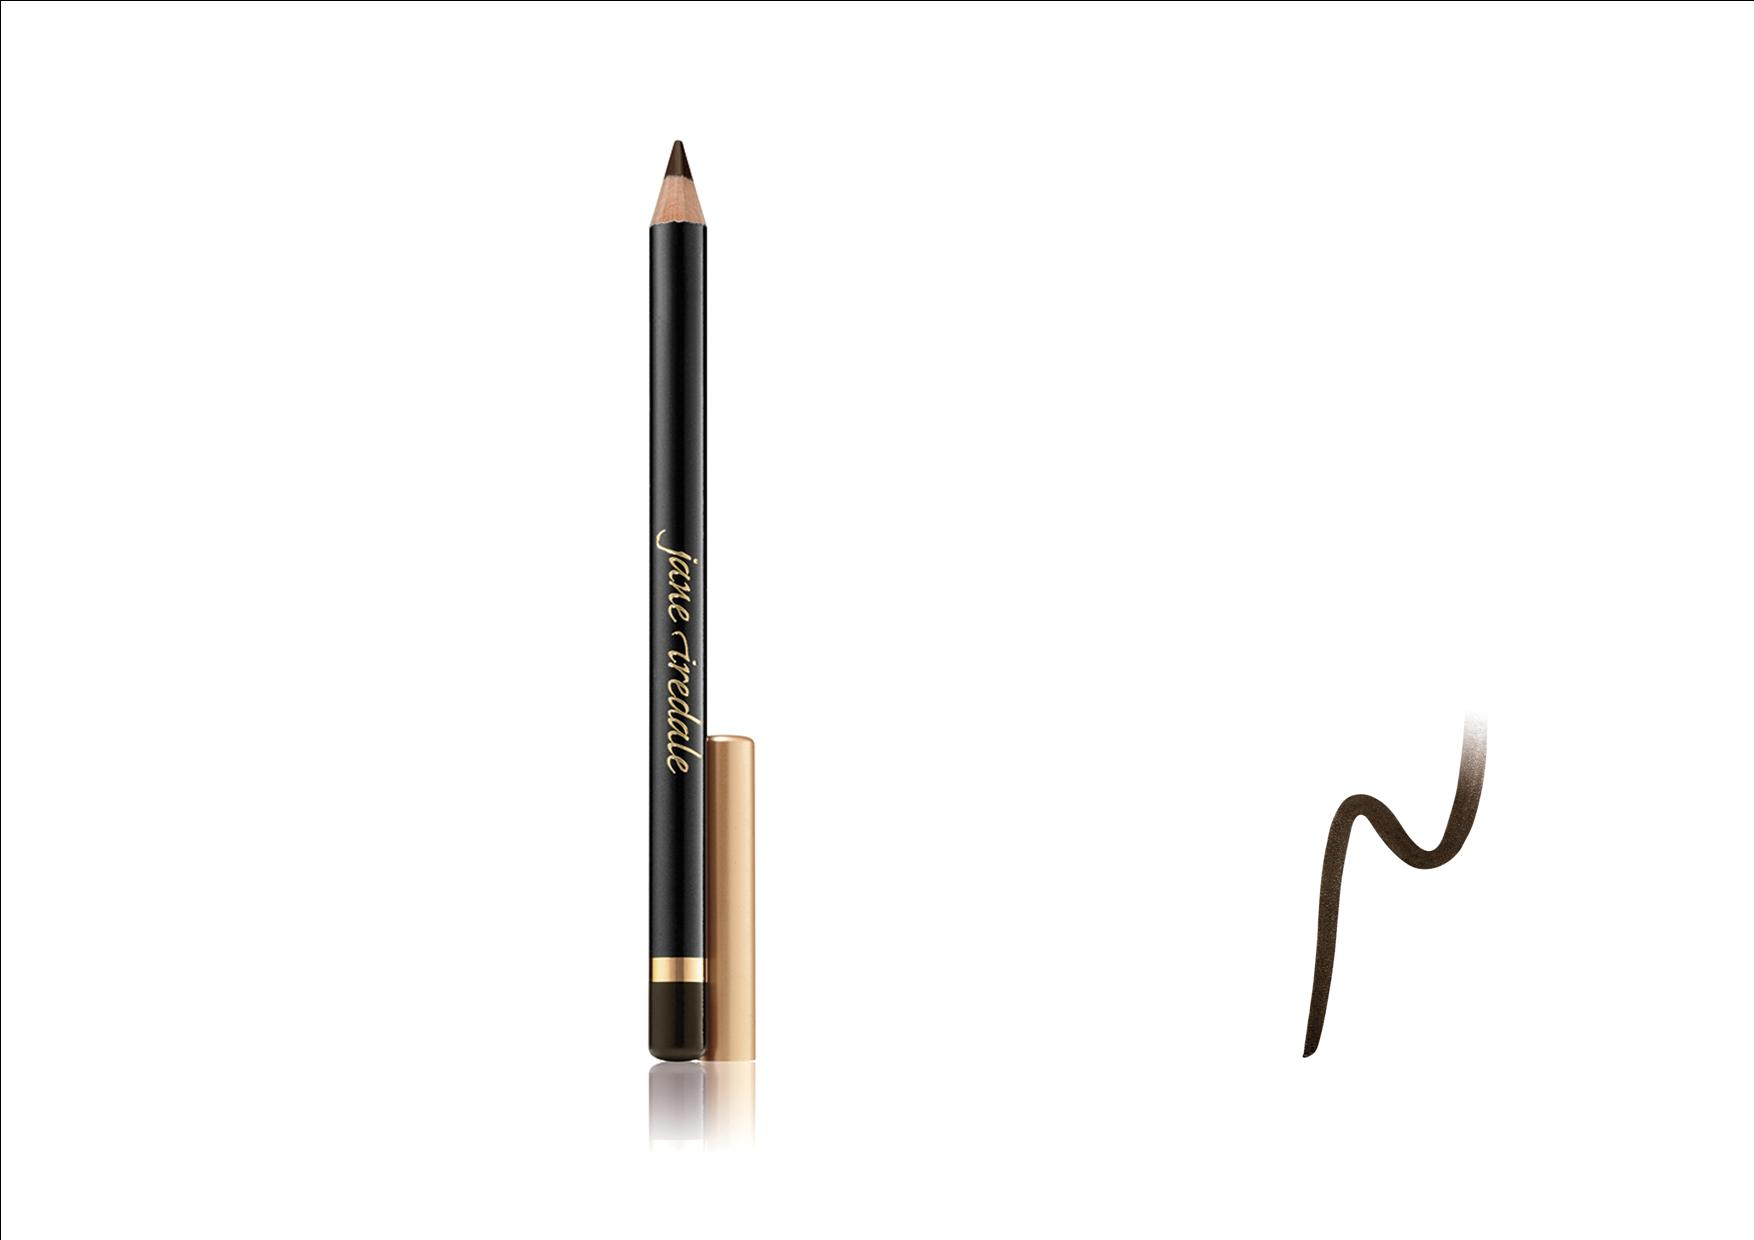 Jane Iredale Eye Pencil Black-Brown